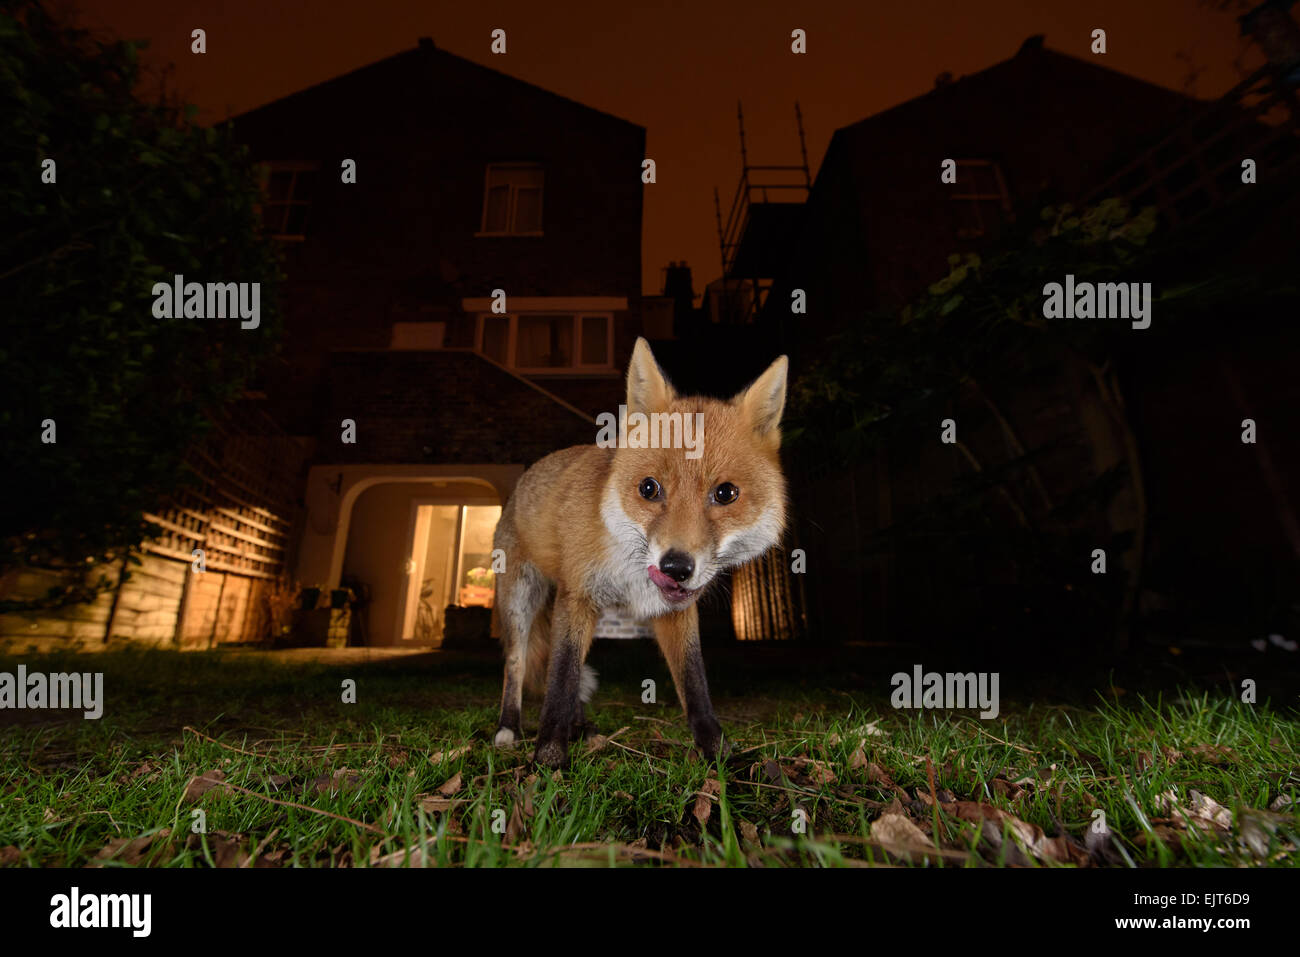 Urban fox licking lips in a South London garden at night - Stock Image